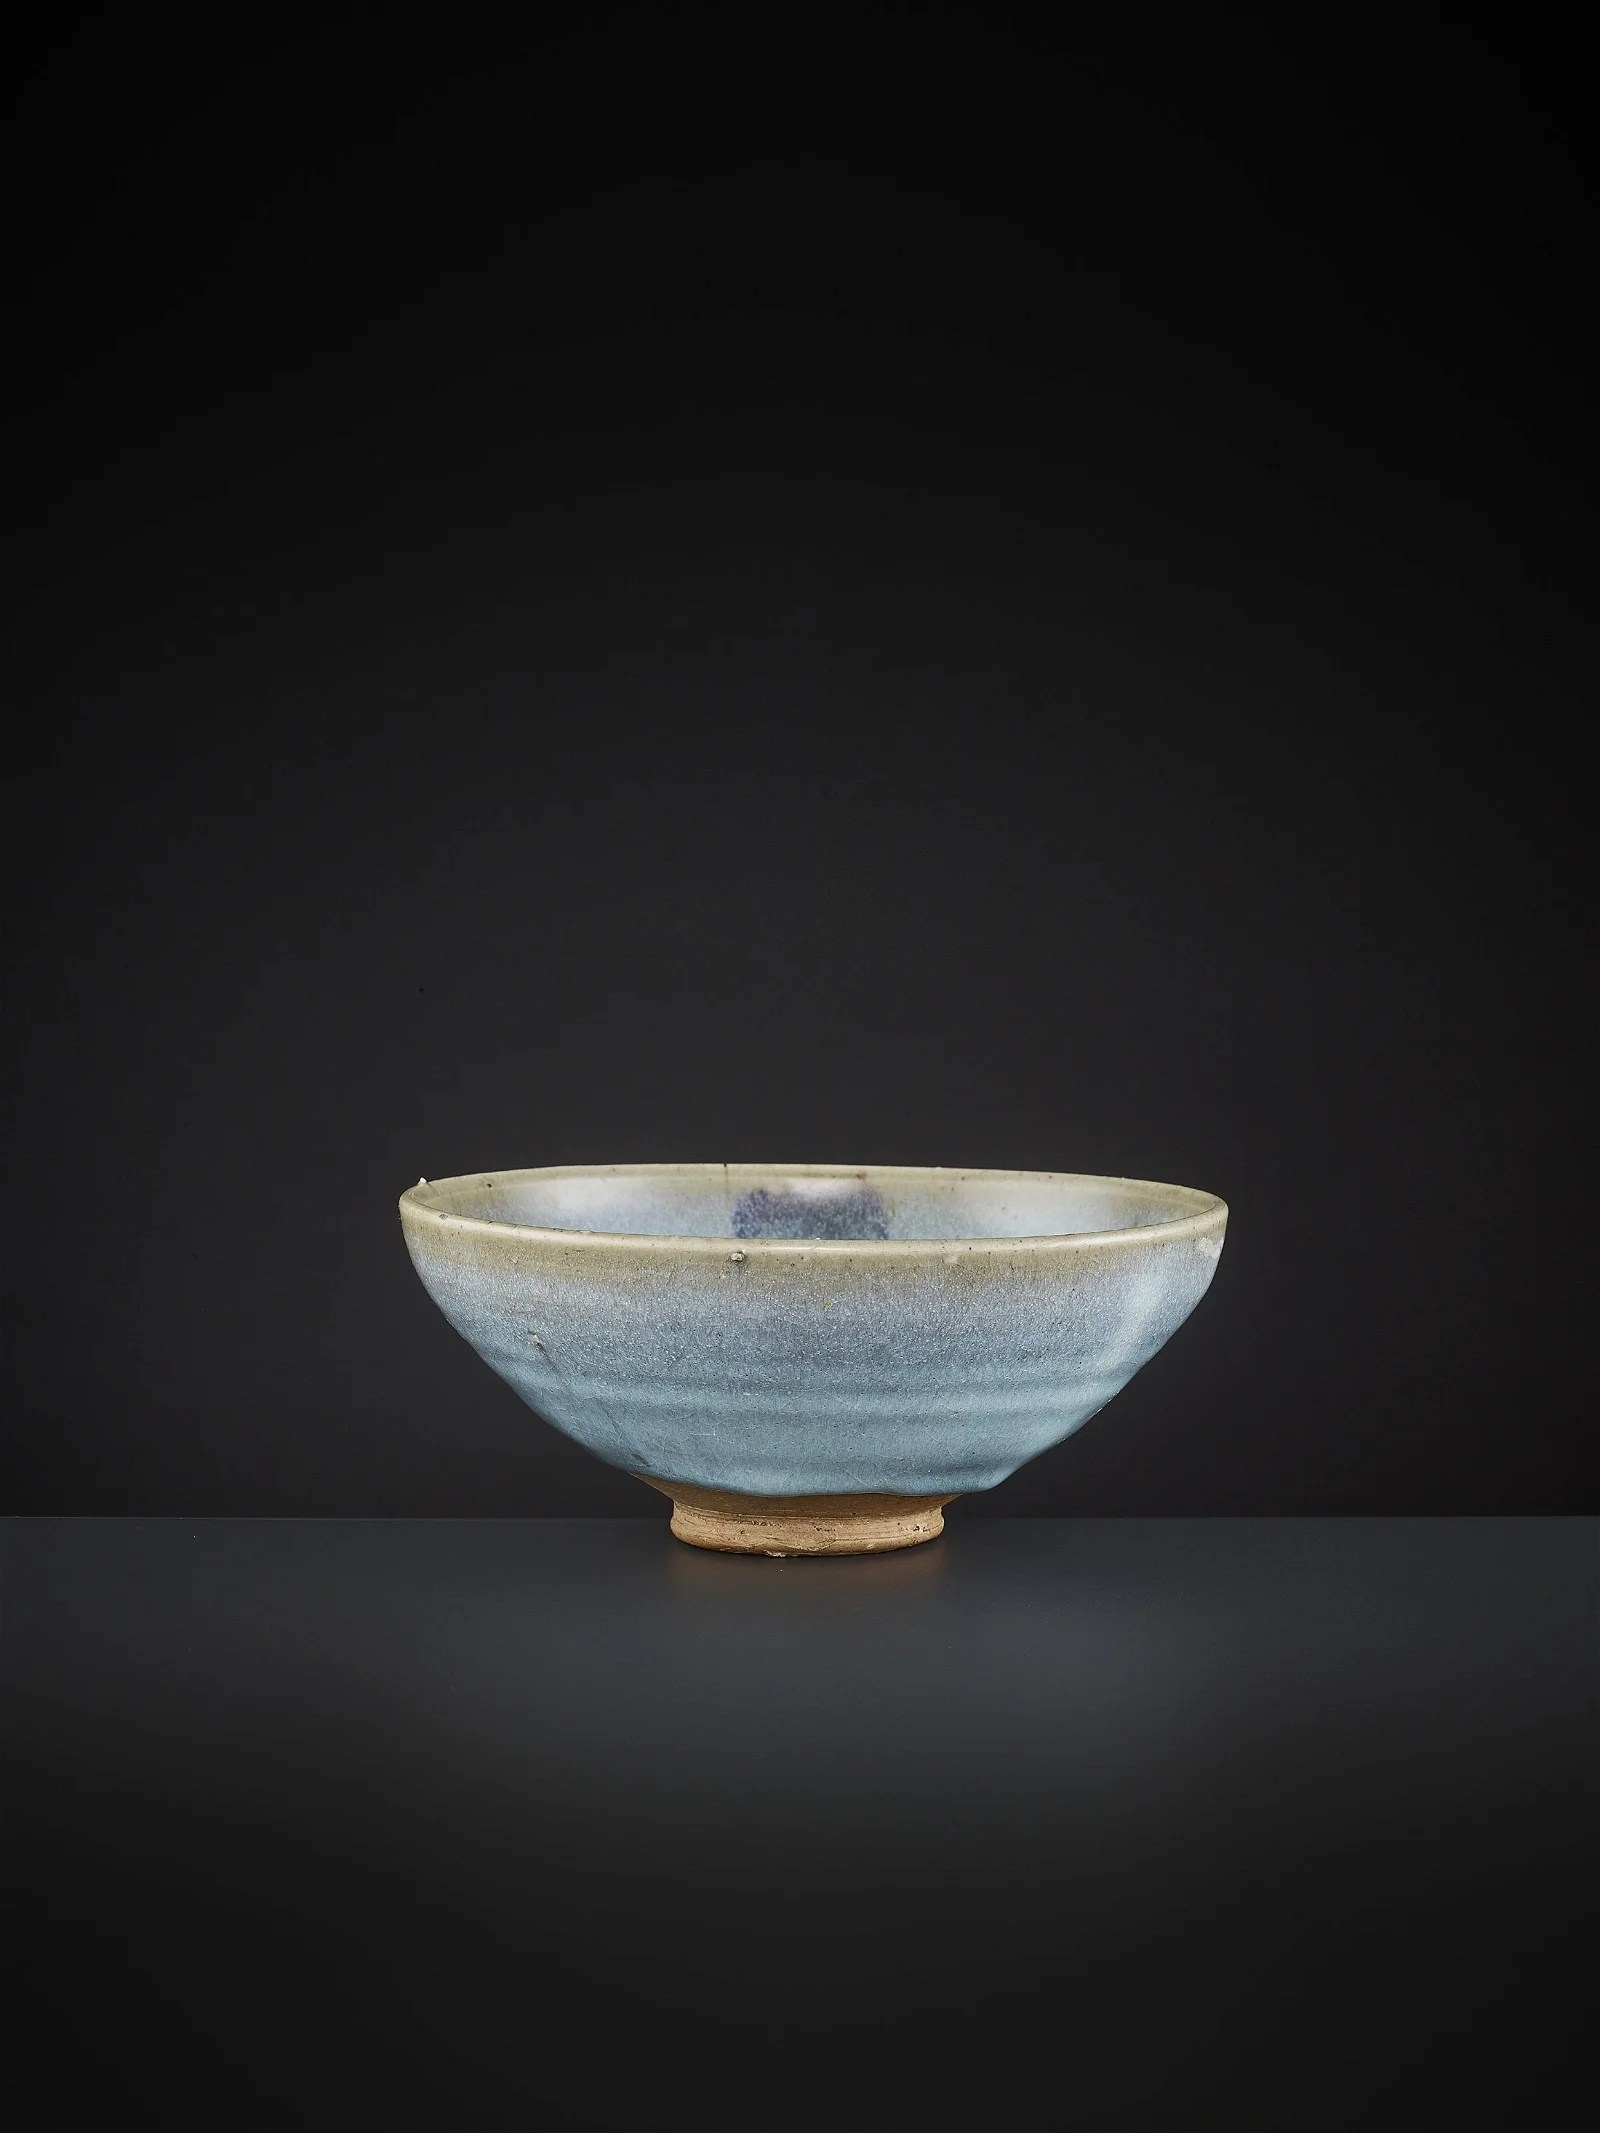 A JUNYAO CONICAL BOWL, 13TH-14TH CENTURY